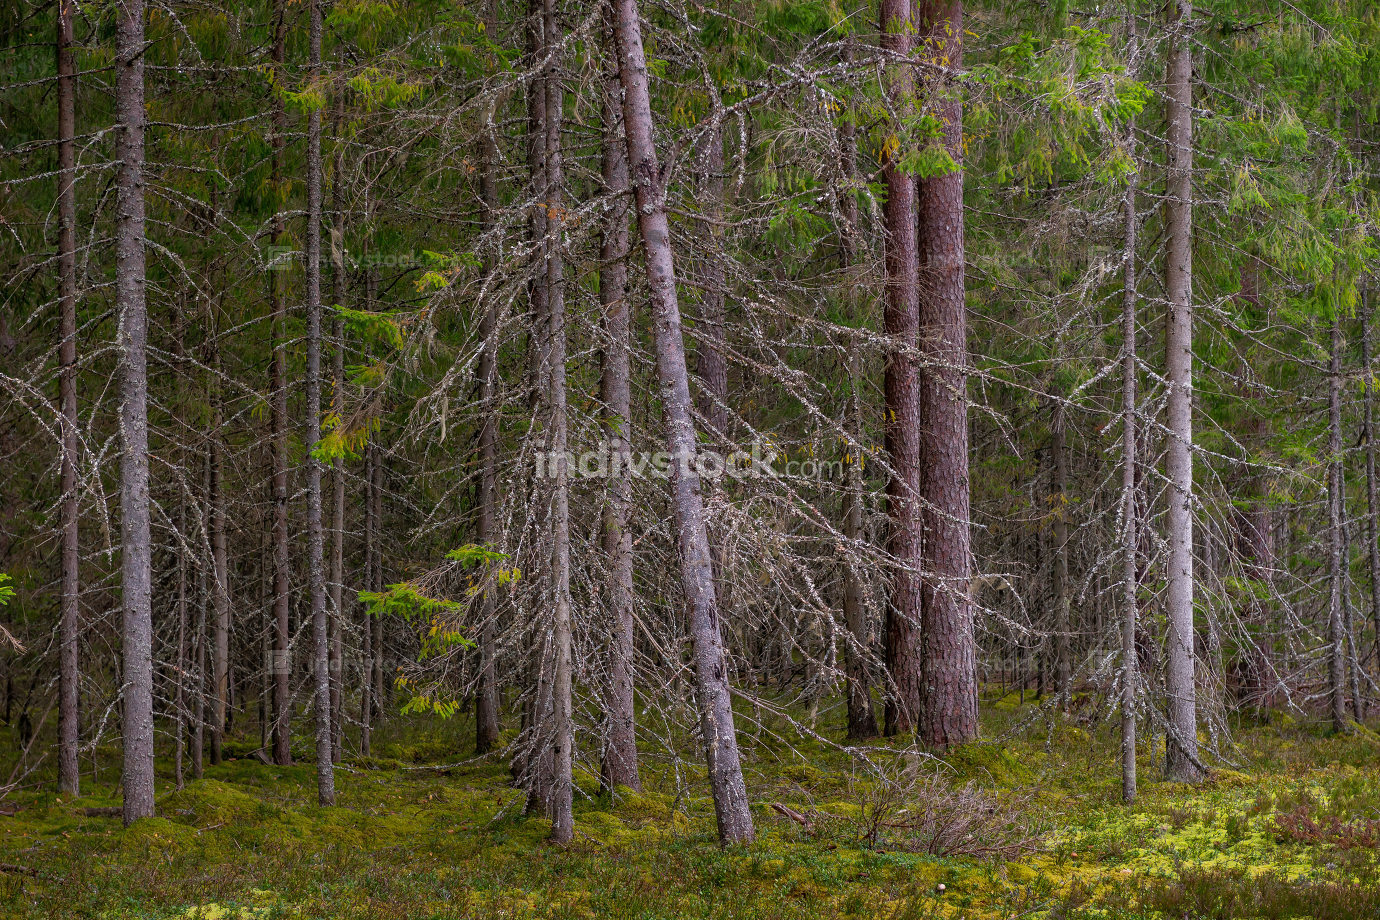 Coniferous forest. Spruce and pine trees.